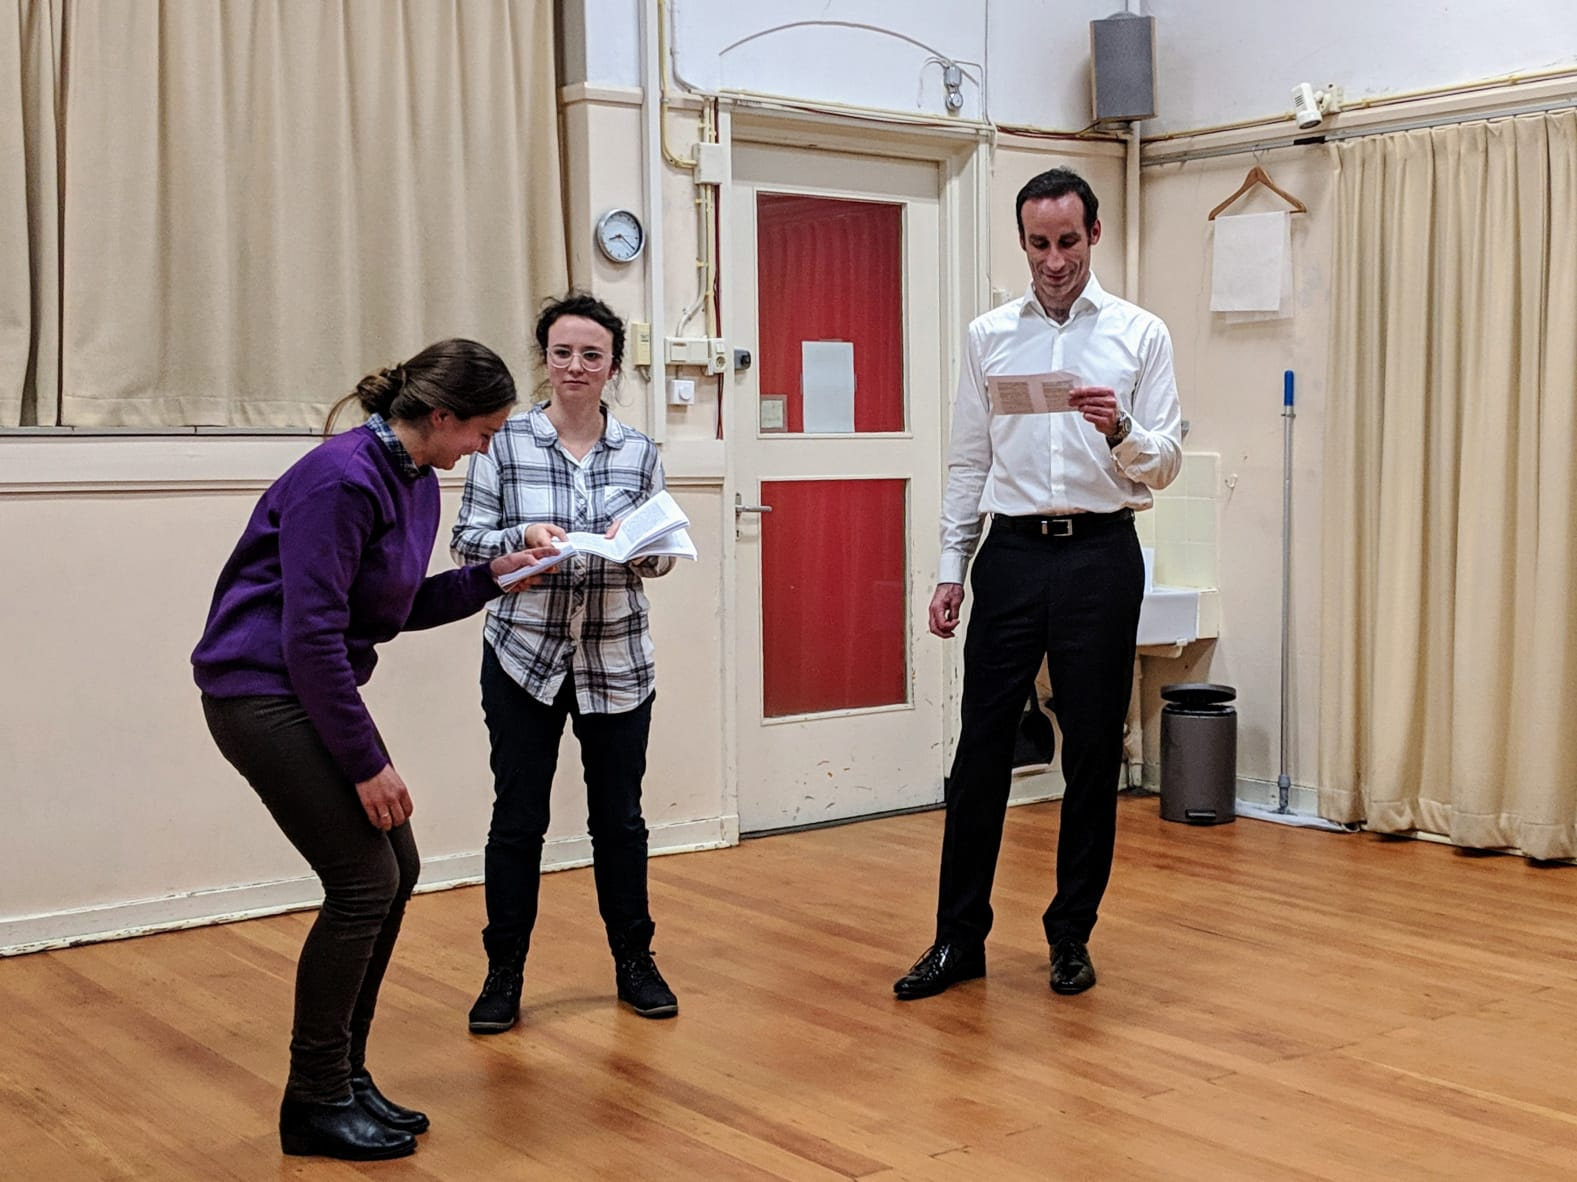 Acting Class Act Attack. Three people, two women one man, read lines. One of the women laughs.